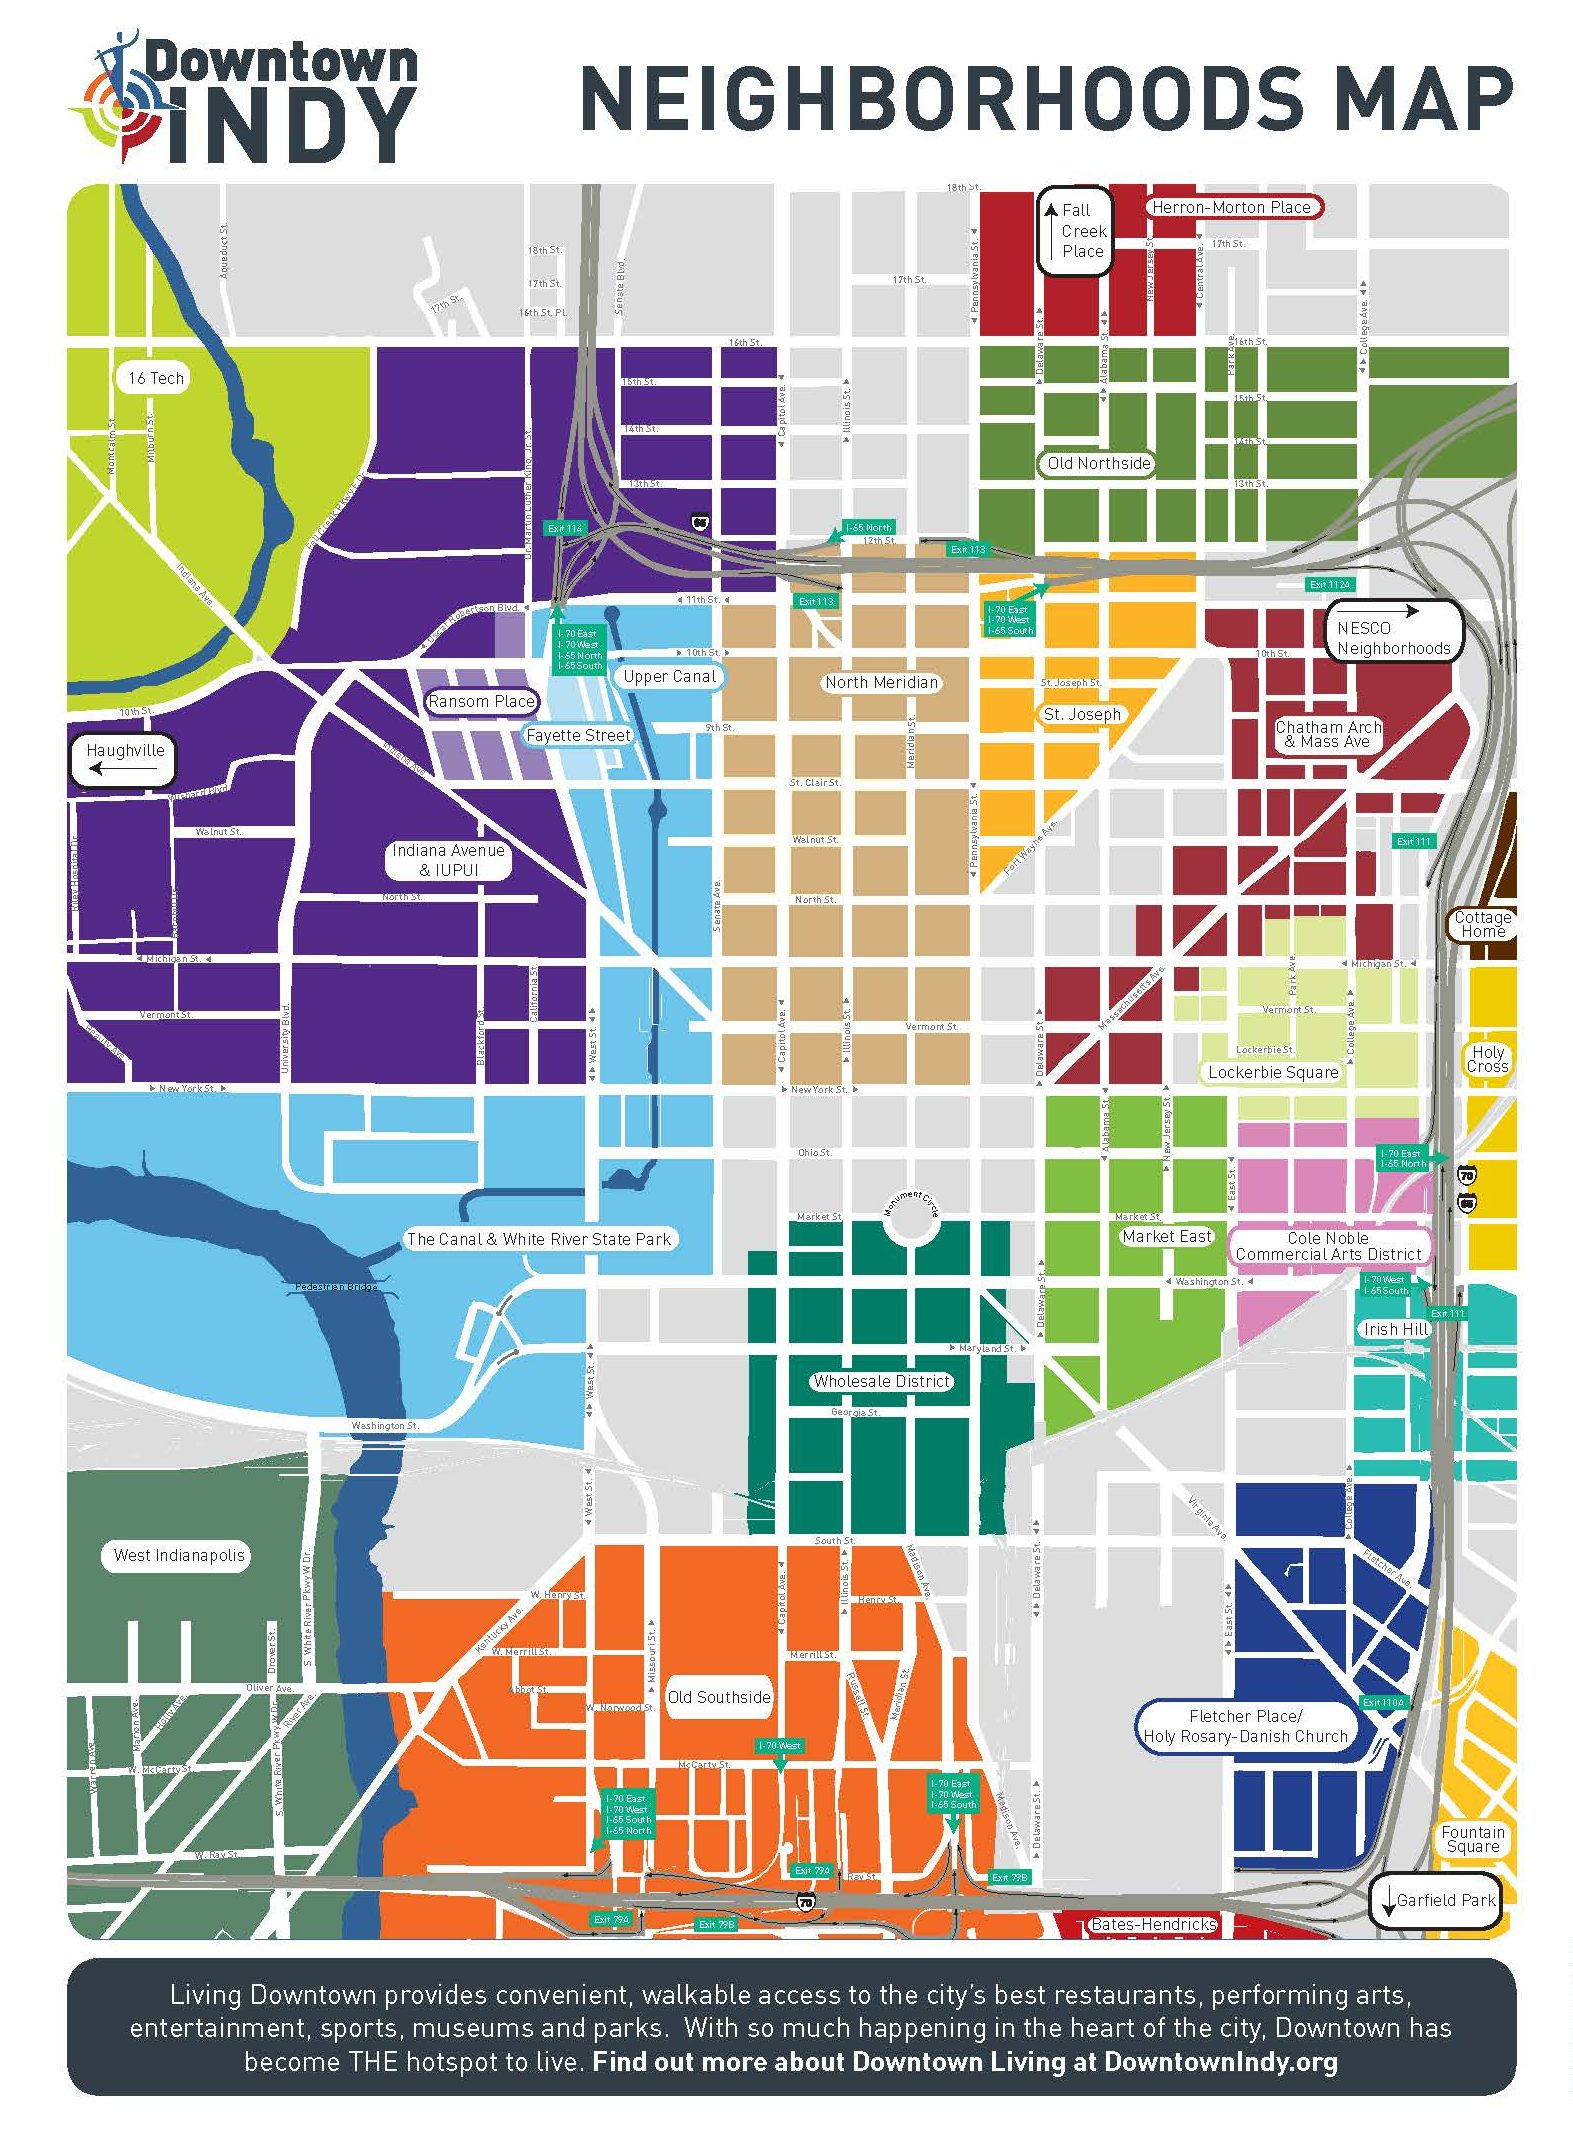 downtown-indy-neighborhoods-map | Soil and groundwater remediation on